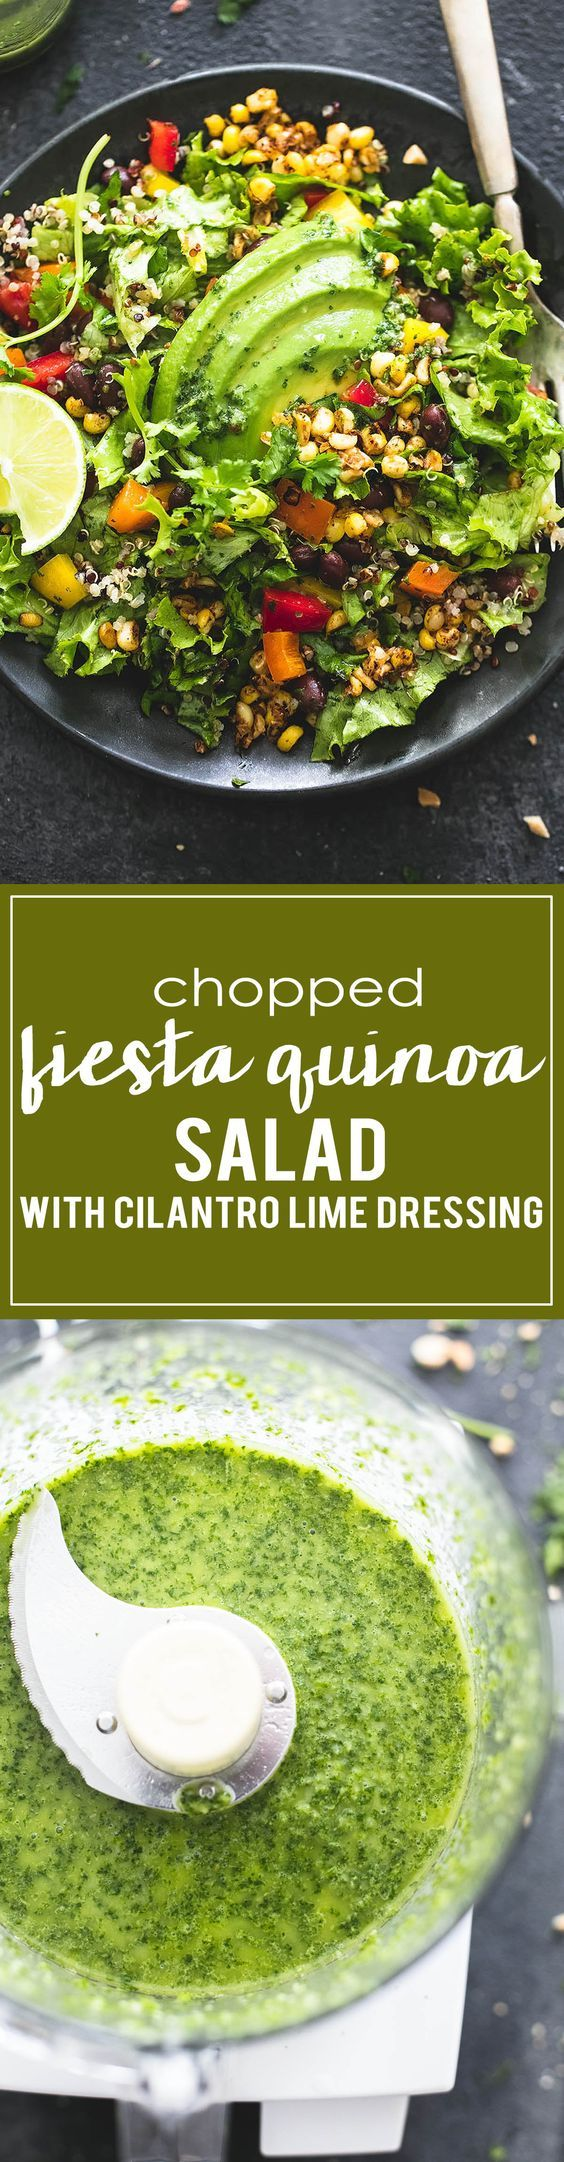 Chopped Fiesta Quinoa Salad with Cilantro Lime Dressing